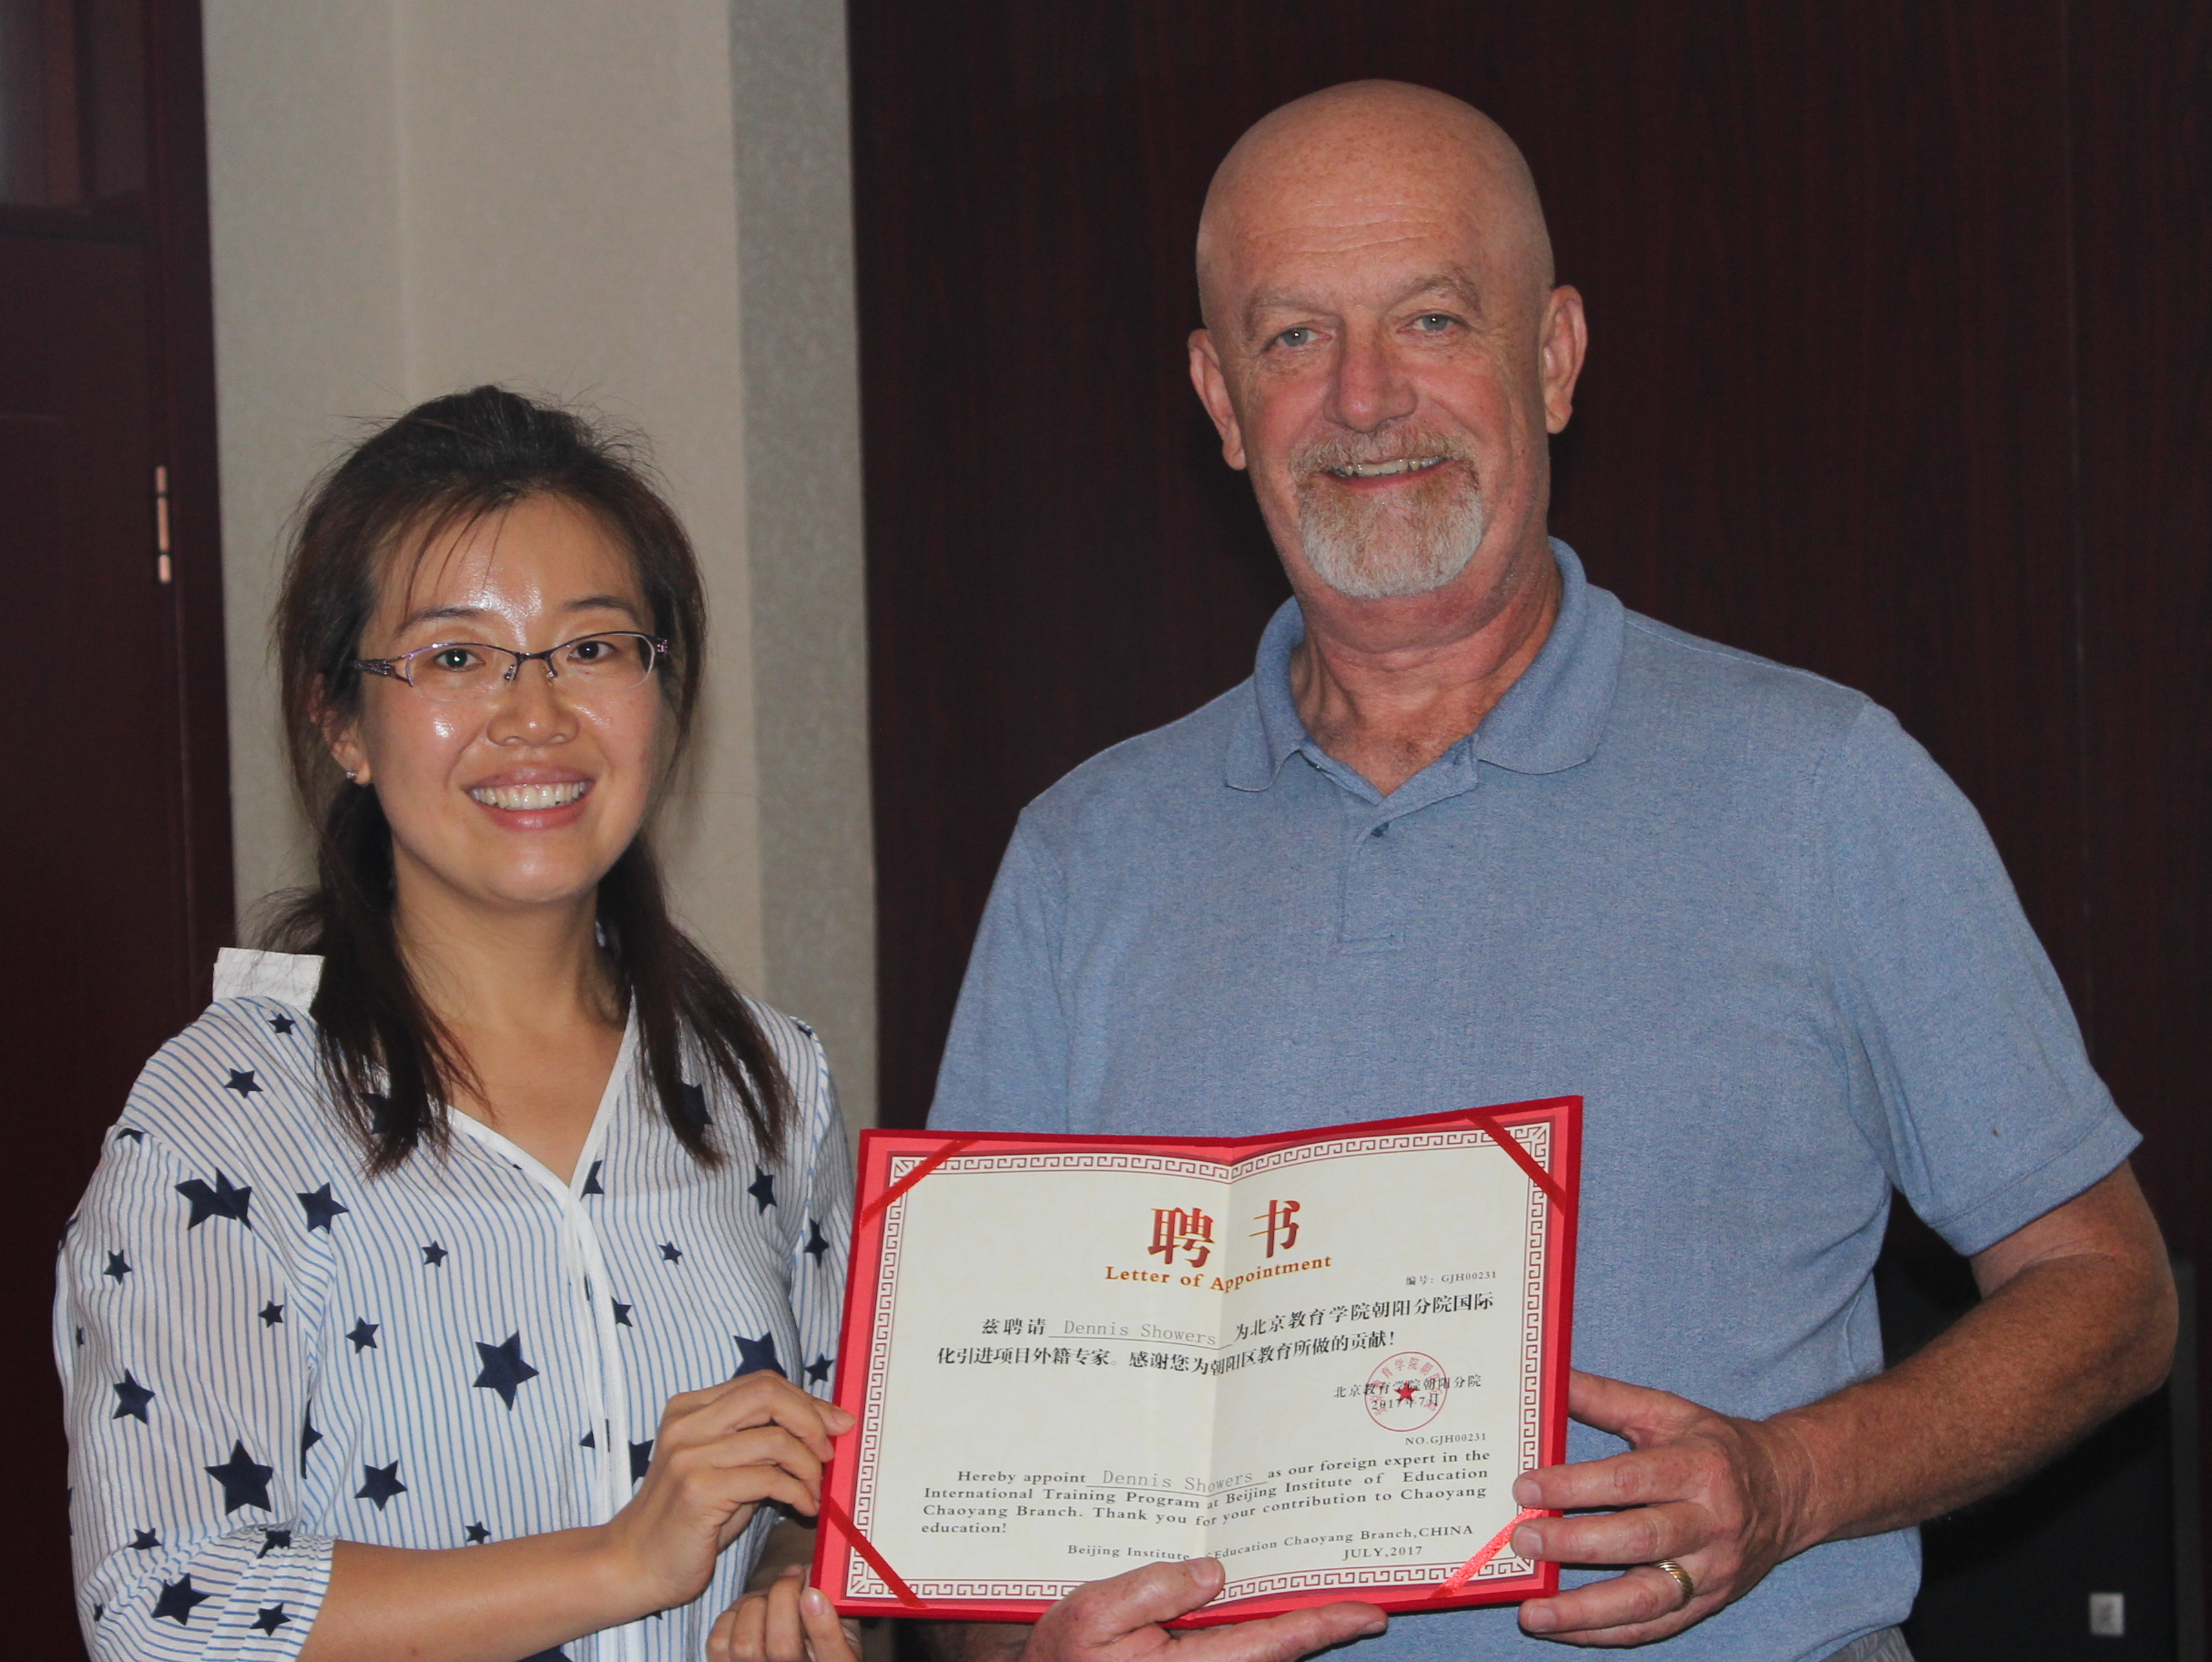 Dr. Showers receiving a certificate acknowledging him as a Foreign Expert in Interdisciplinary Teaching by The Changyang District of Beijing Schools